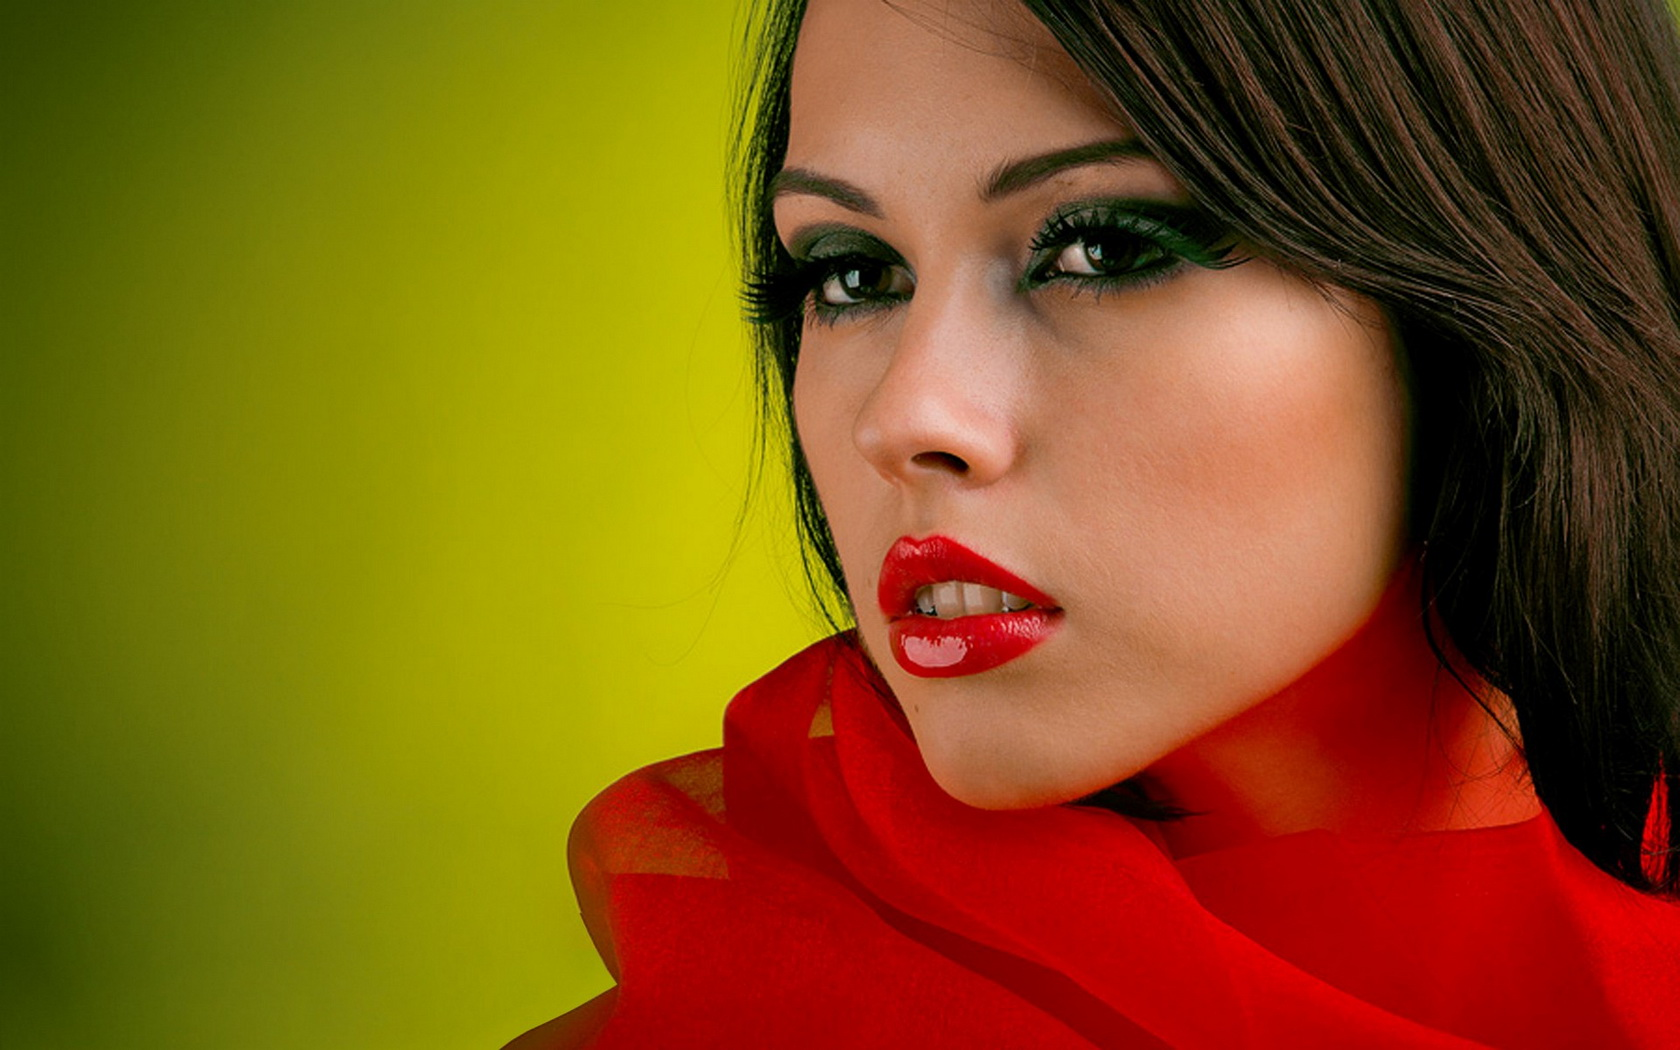 Brunette wallpaper and background image 1680x1050 id 449200 - Beautiful model wallpaper ...